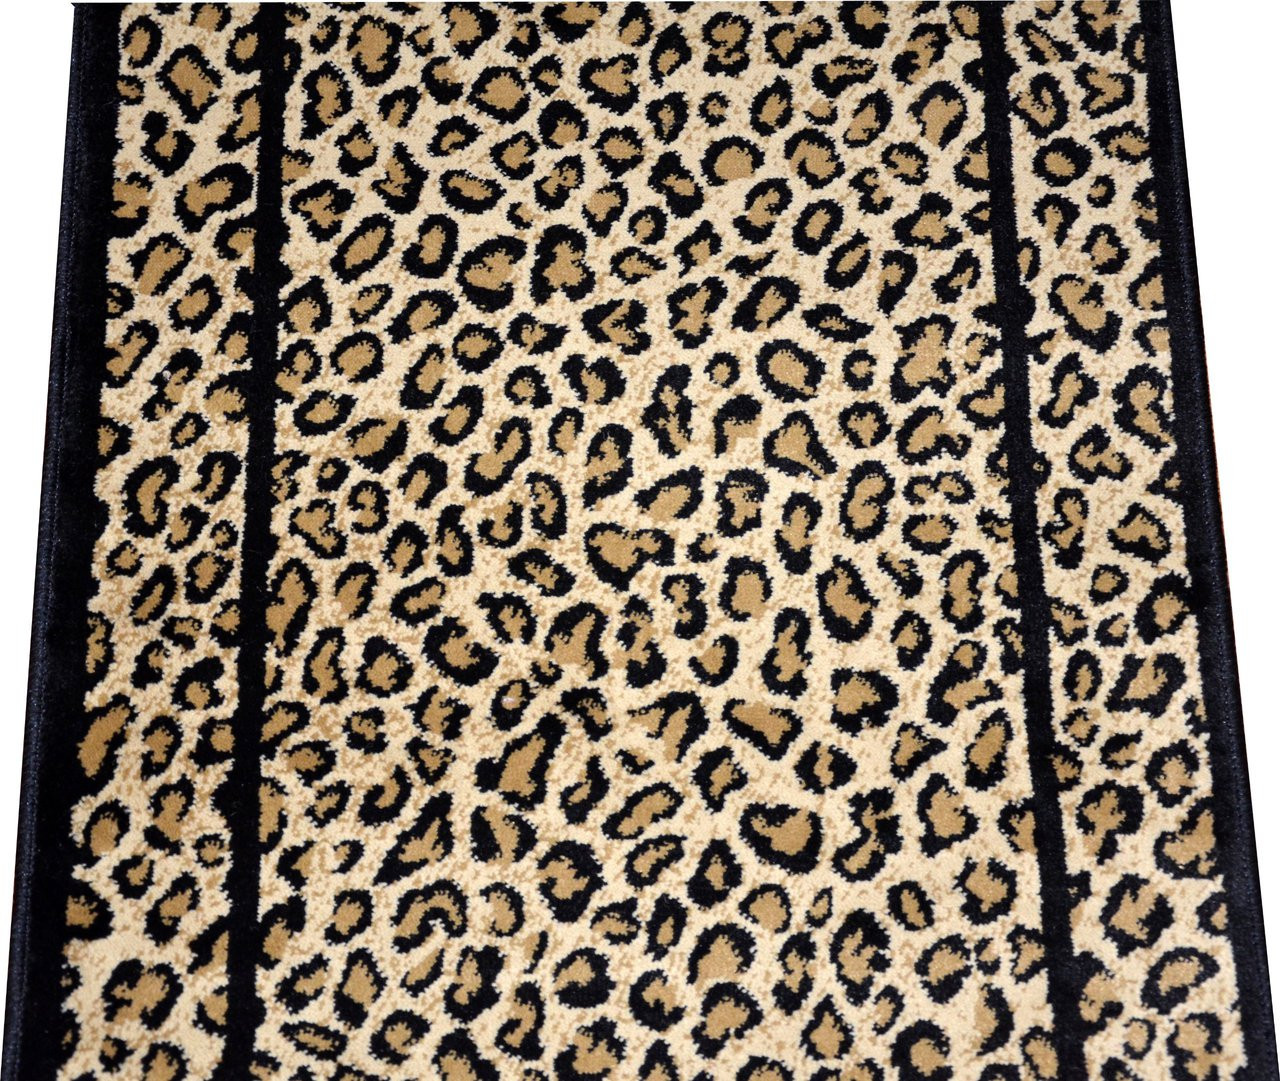 Dean Cheetah Carpet Rug Hallway Stair Runner